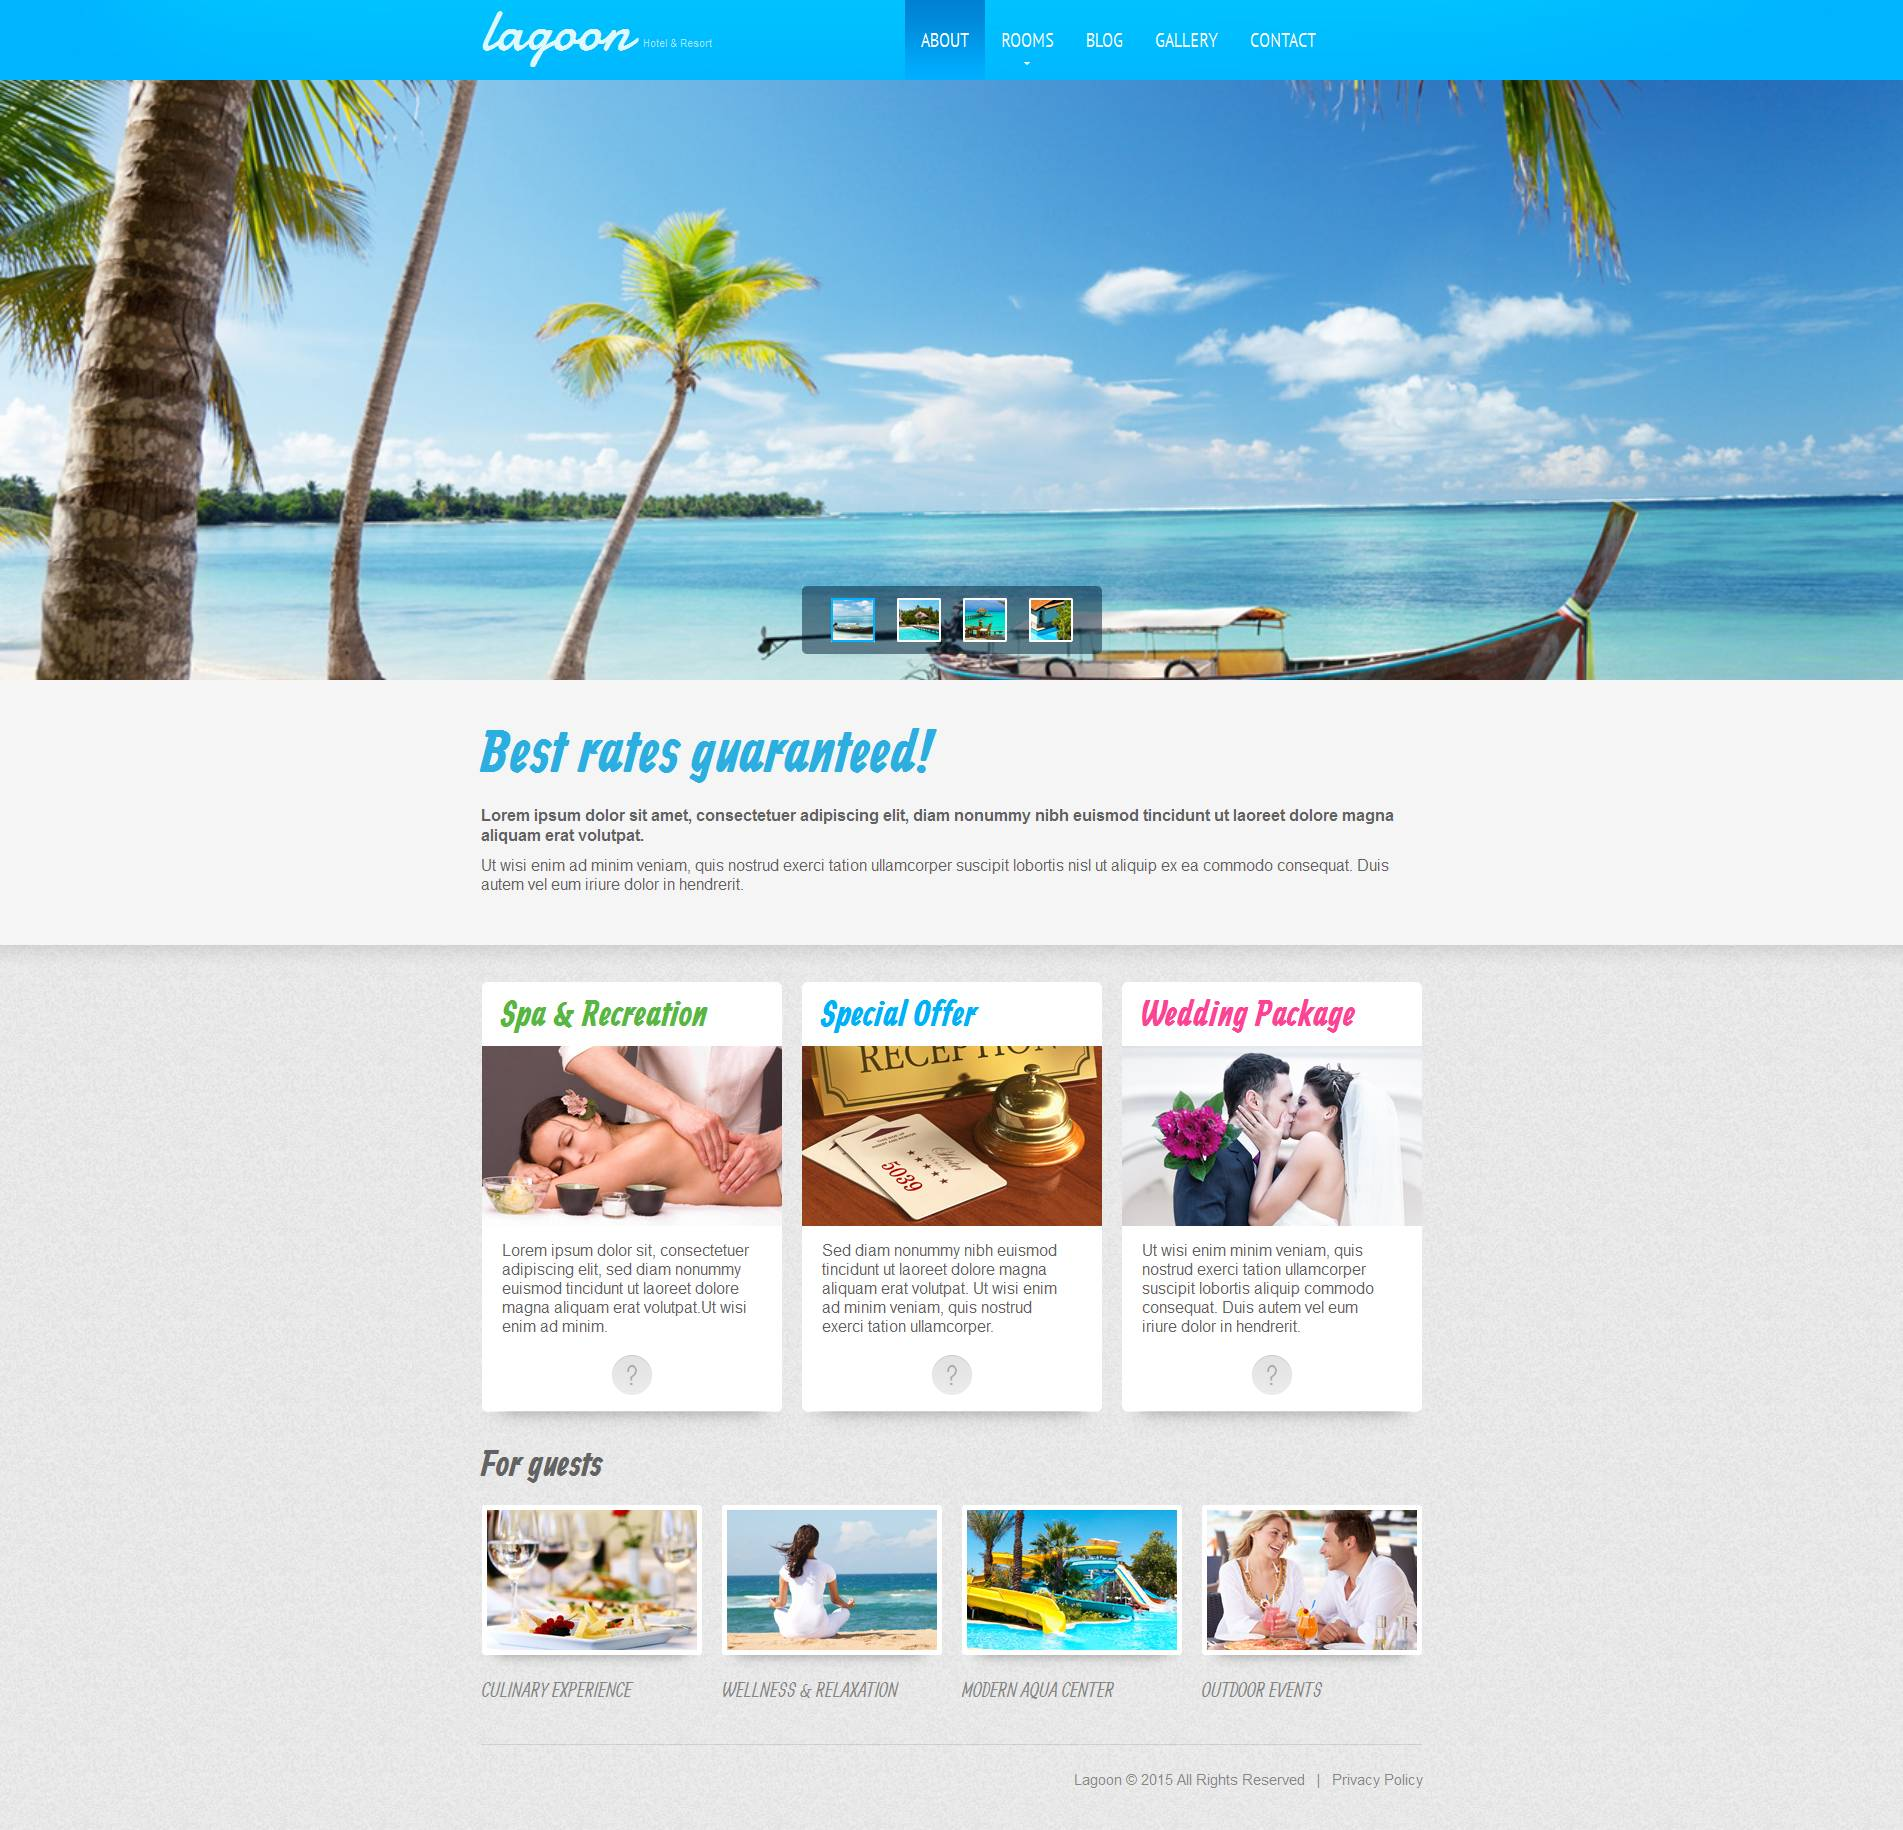 The Lagoon Hotel Moto CMS HTML Design 53525, one of the best Moto CMS HTML templates of its kind (hotels, most popular), also known as lagoon hotel Moto CMS HTML template, motel Moto CMS HTML template, template Moto CMS HTML template, building Moto CMS HTML template, events Moto CMS HTML template, interior Moto CMS HTML template, cozy Moto CMS HTML template, comfortable room Moto CMS HTML template, spacious Moto CMS HTML template, light Moto CMS HTML template, modern rest Moto CMS HTML template, pool Moto CMS HTML template, floor Moto CMS HTML template, stairs Moto CMS HTML template, staff Moto CMS HTML template, reception Moto CMS HTML template, testimonial Moto CMS HTML template, service Moto CMS HTML template, offer Moto CMS HTML template, booking Moto CMS HTML template, reservation Moto CMS HTML template, order Moto CMS HTML template, location Moto CMS HTML template, security Moto CMS HTML template, wedding Moto CMS HTML template, cerem and related with lagoon hotel, motel, template, building, events, interior, cozy, comfortable room, spacious, light, modern rest, pool, floor, stairs, staff, reception, testimonial, service, offer, booking, reservation, order, location, security, wedding, cerem, etc.